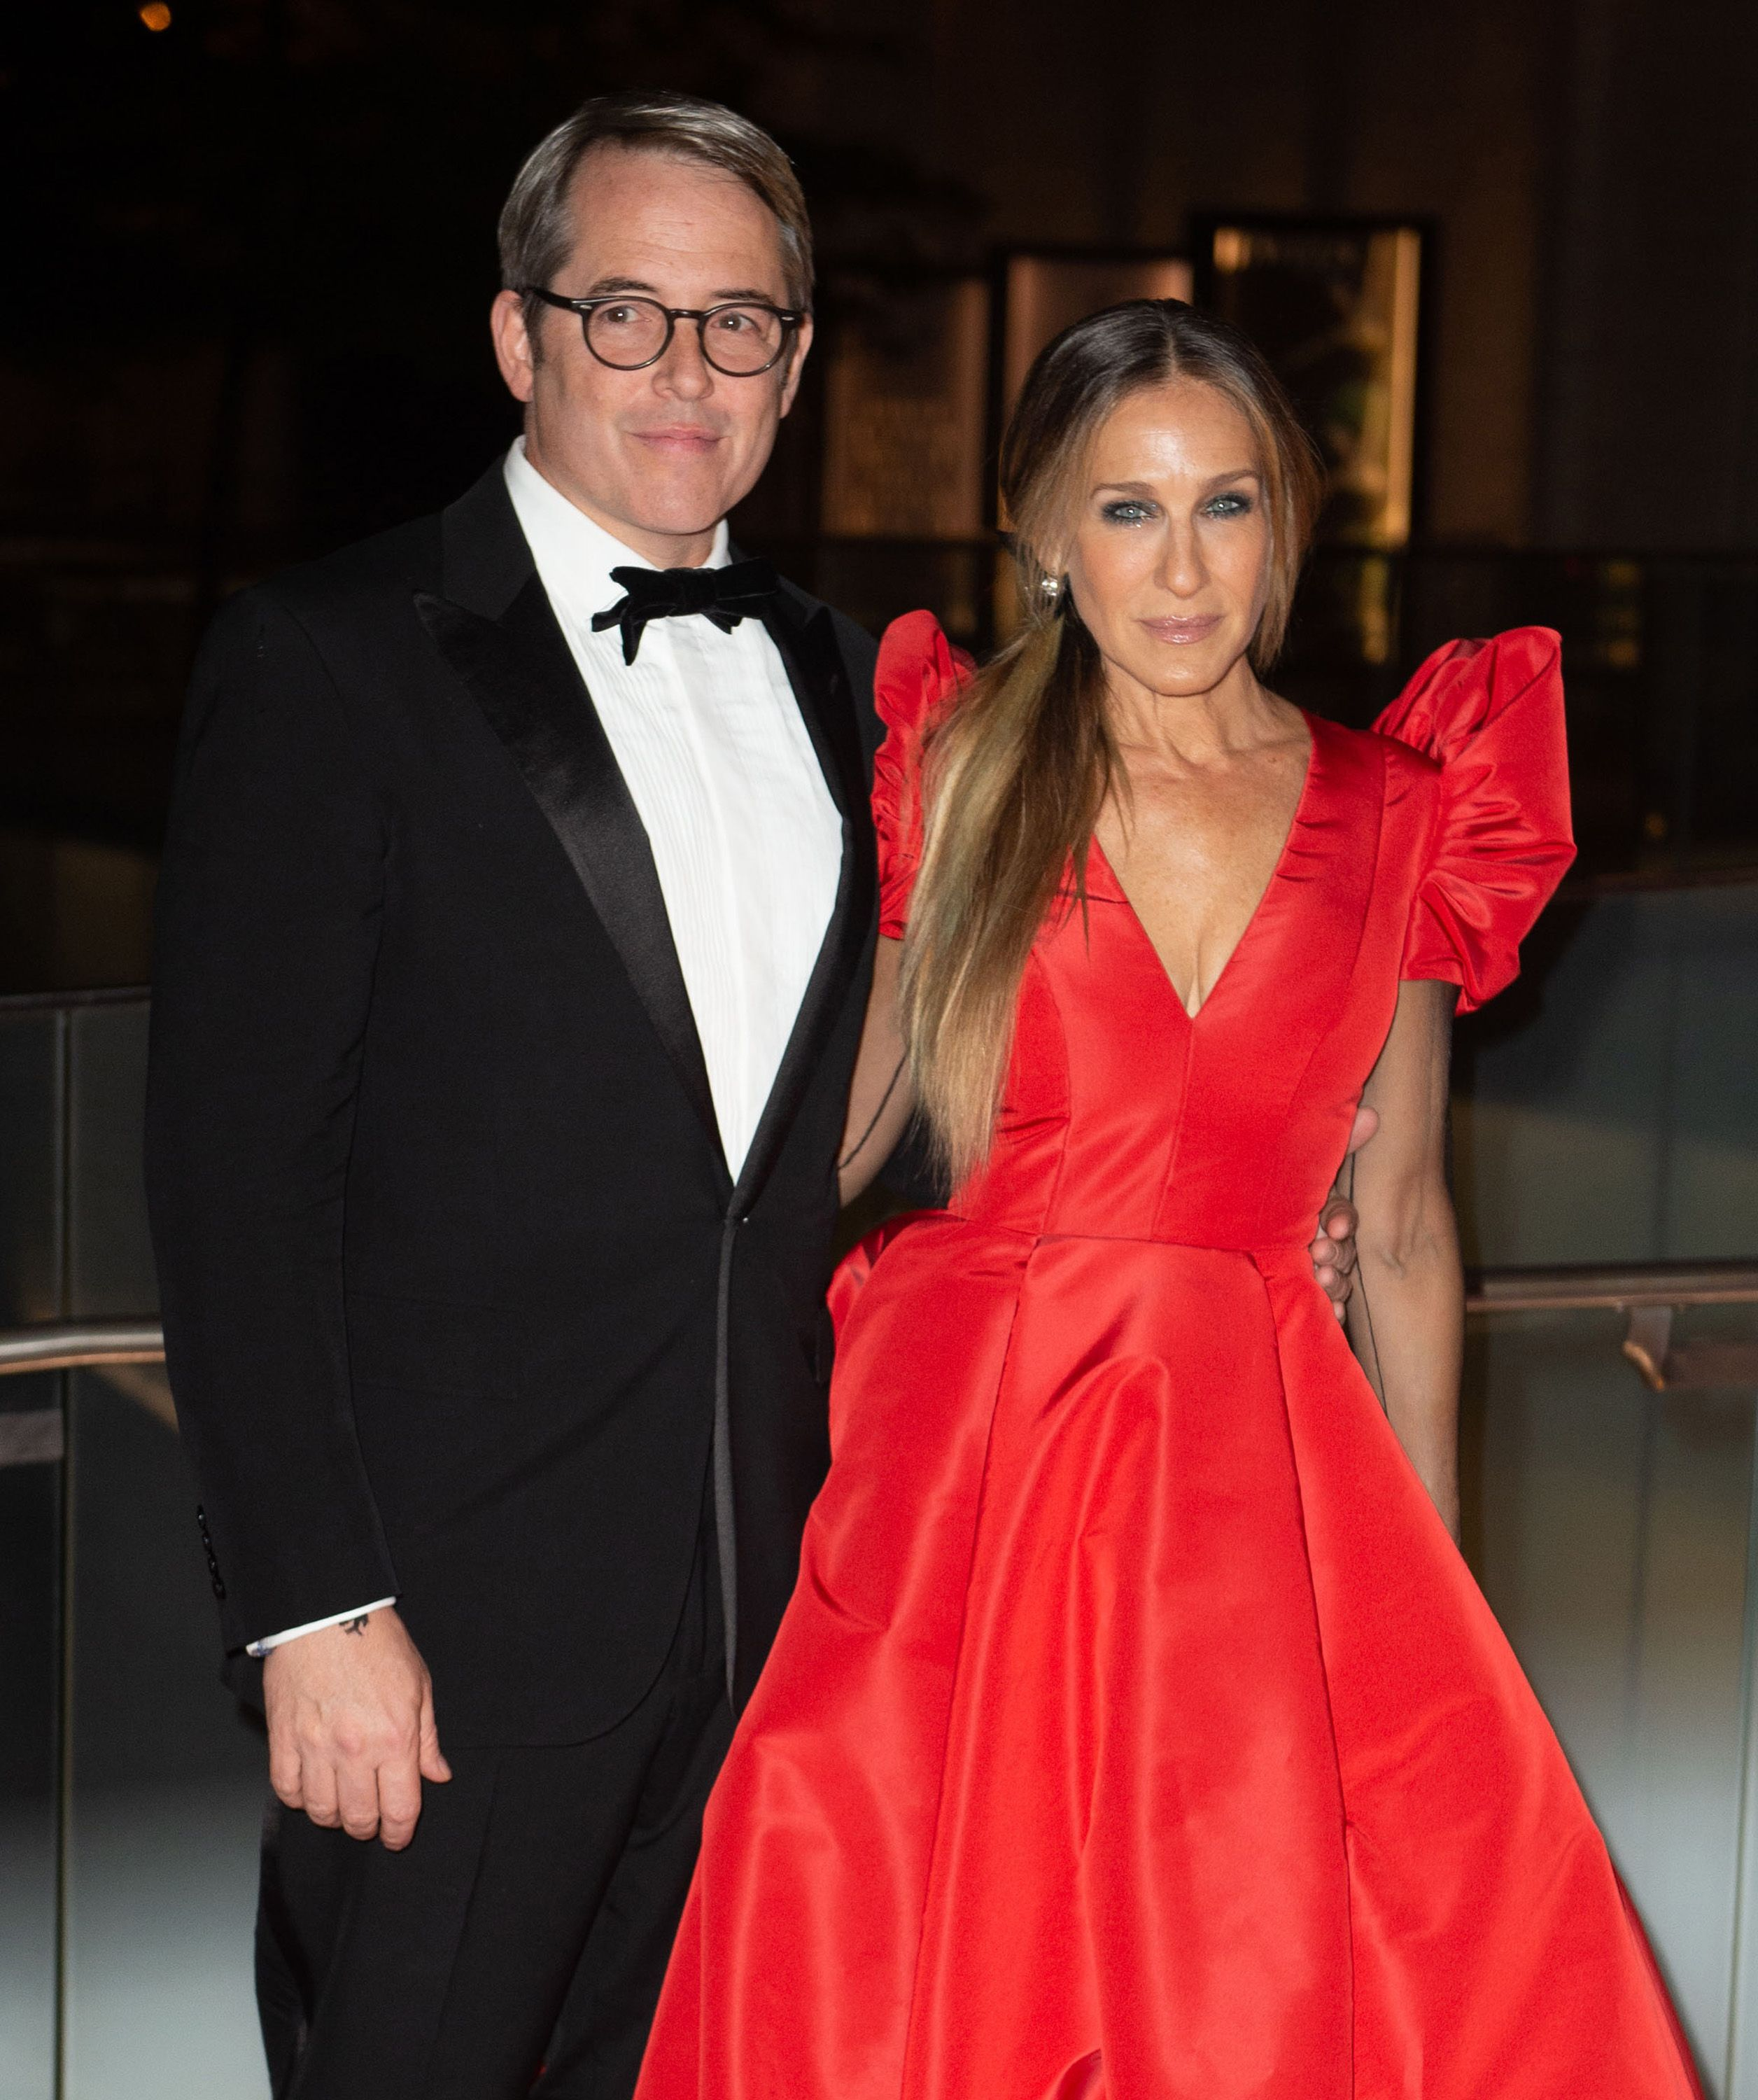 Sarah Jessica Parker defends marriage in powerful Instagram post